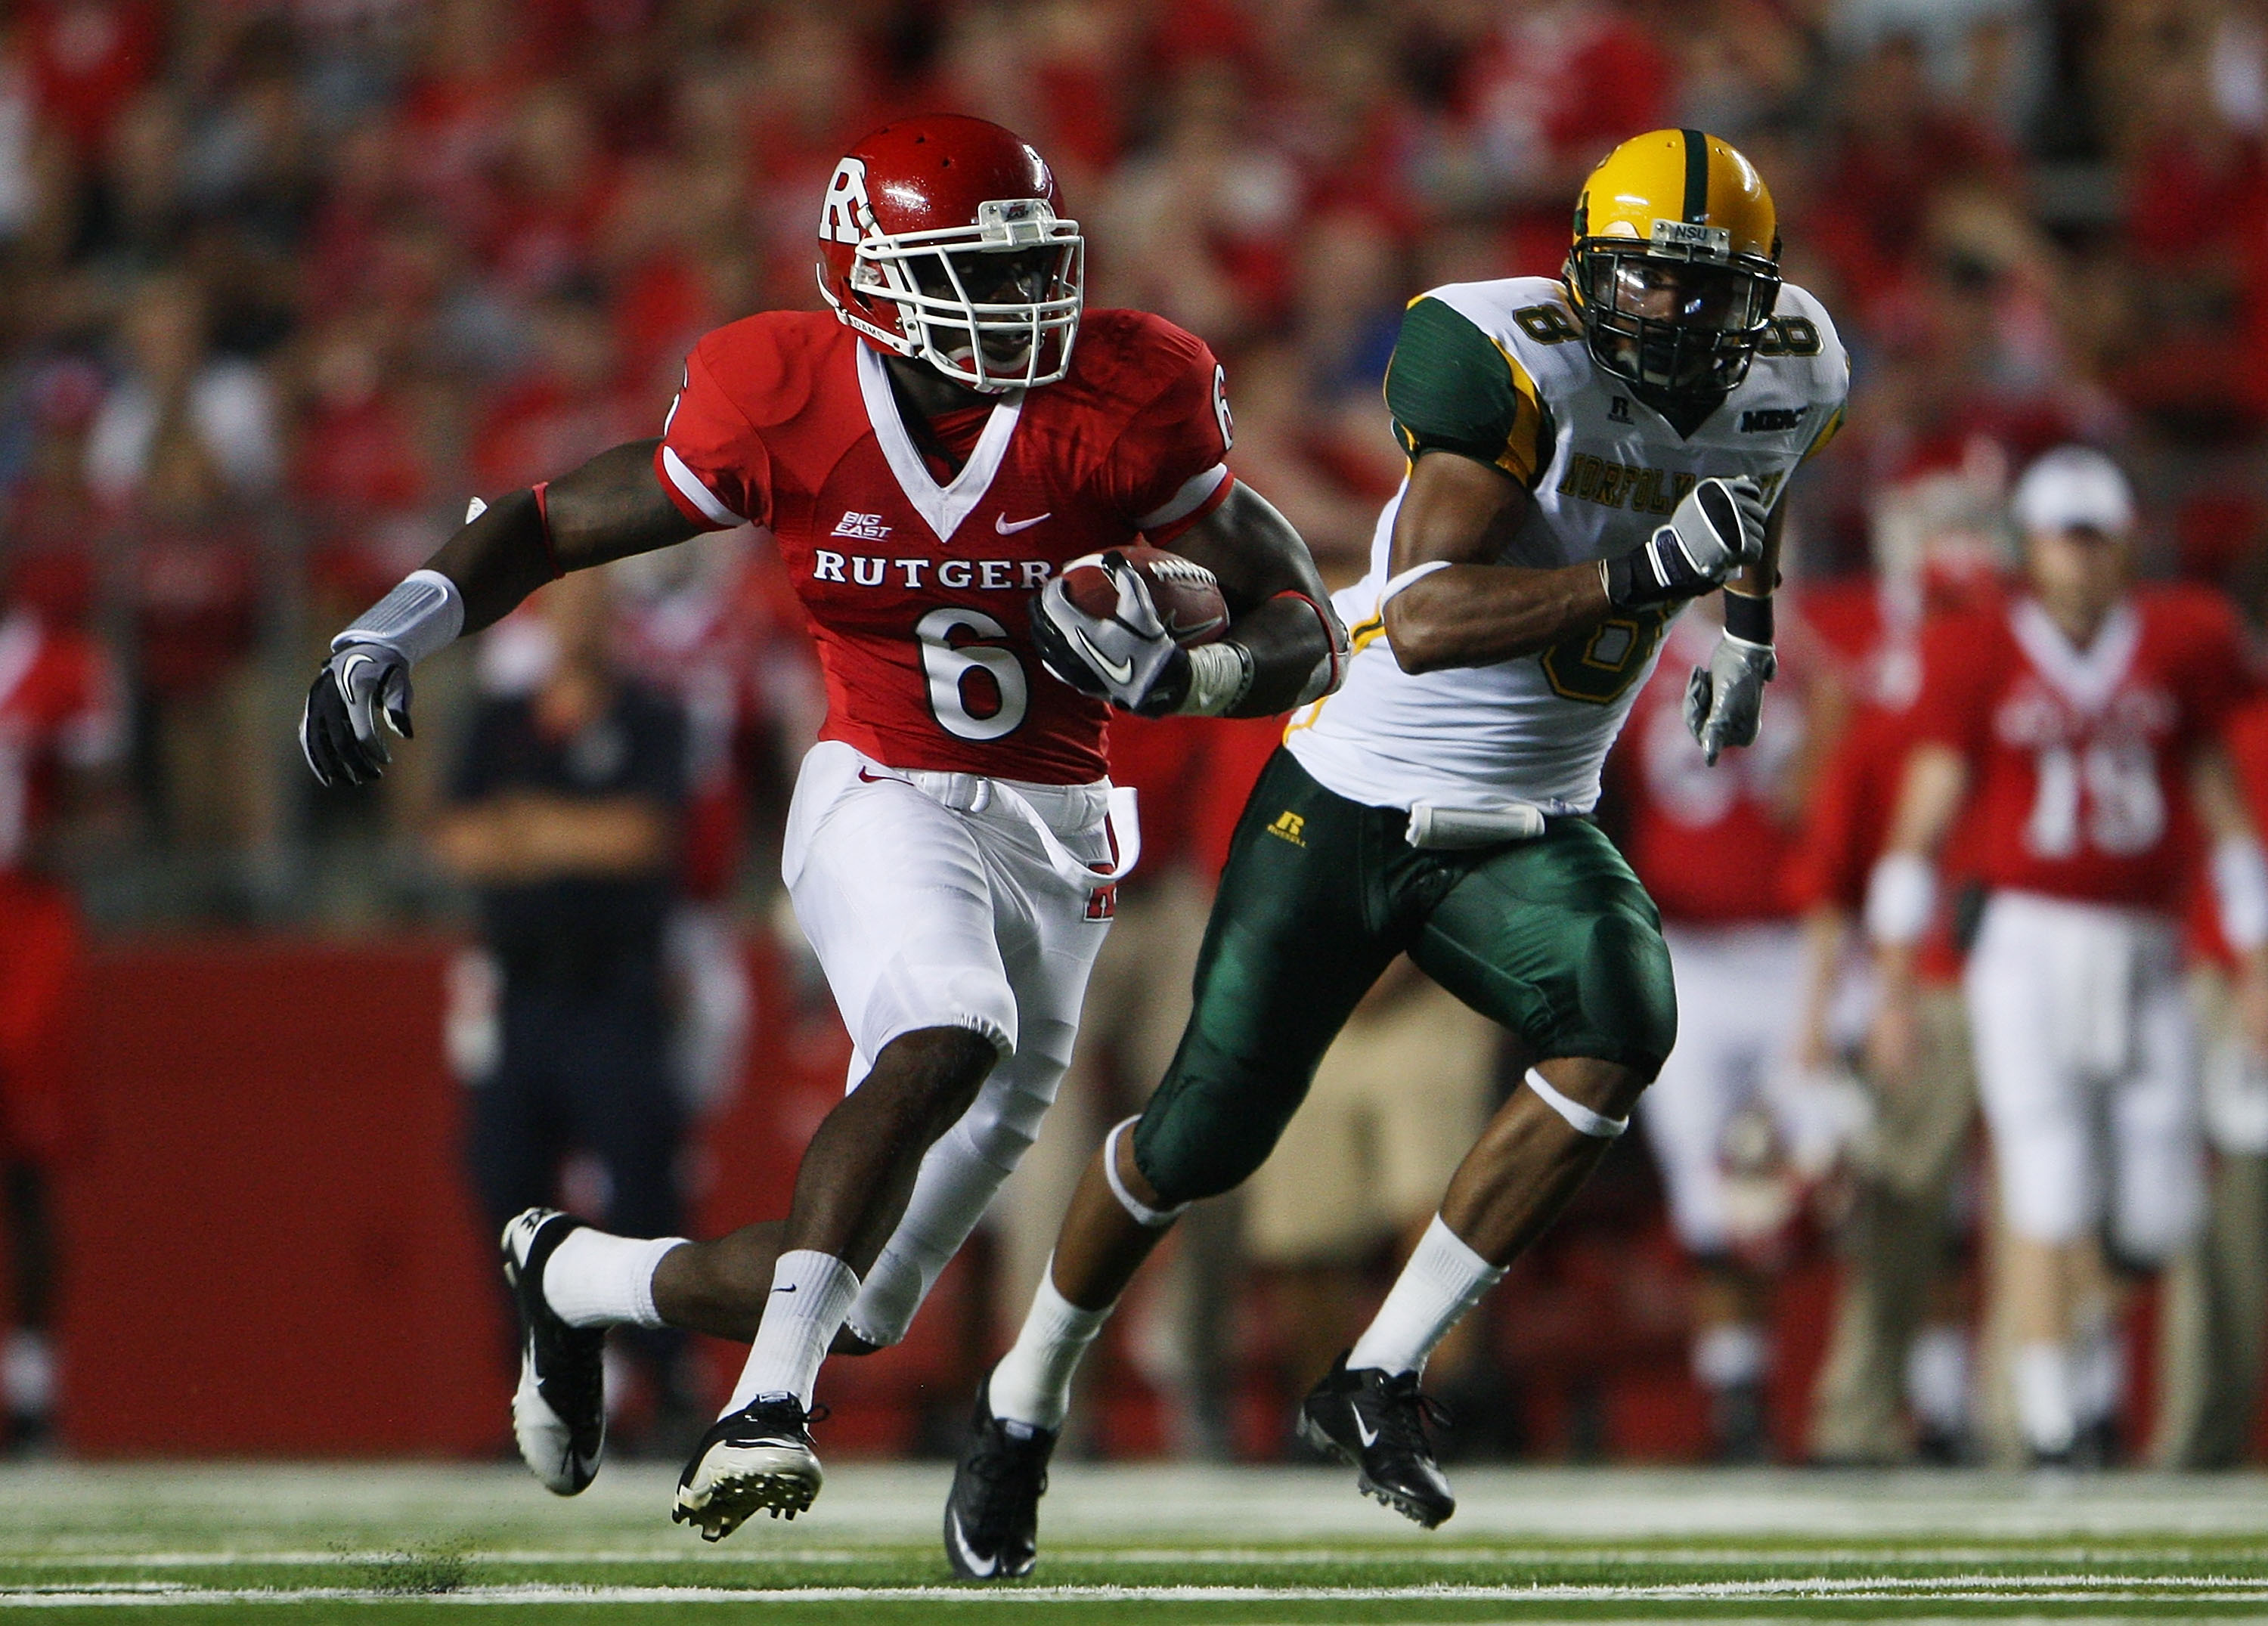 NEW BRUNSWICK, NJ - SEPTEMBER 02:  Mohamed Sanu #6 (L) of the Rutgers Scarlet Knights runs the ball against the Norfolk State Spartans at Rutgers Stadium on September 2, 2010 in New Brunswick, New Jersey. The Scarlet Knights beat the Spartans 31 - 0.  (Ph